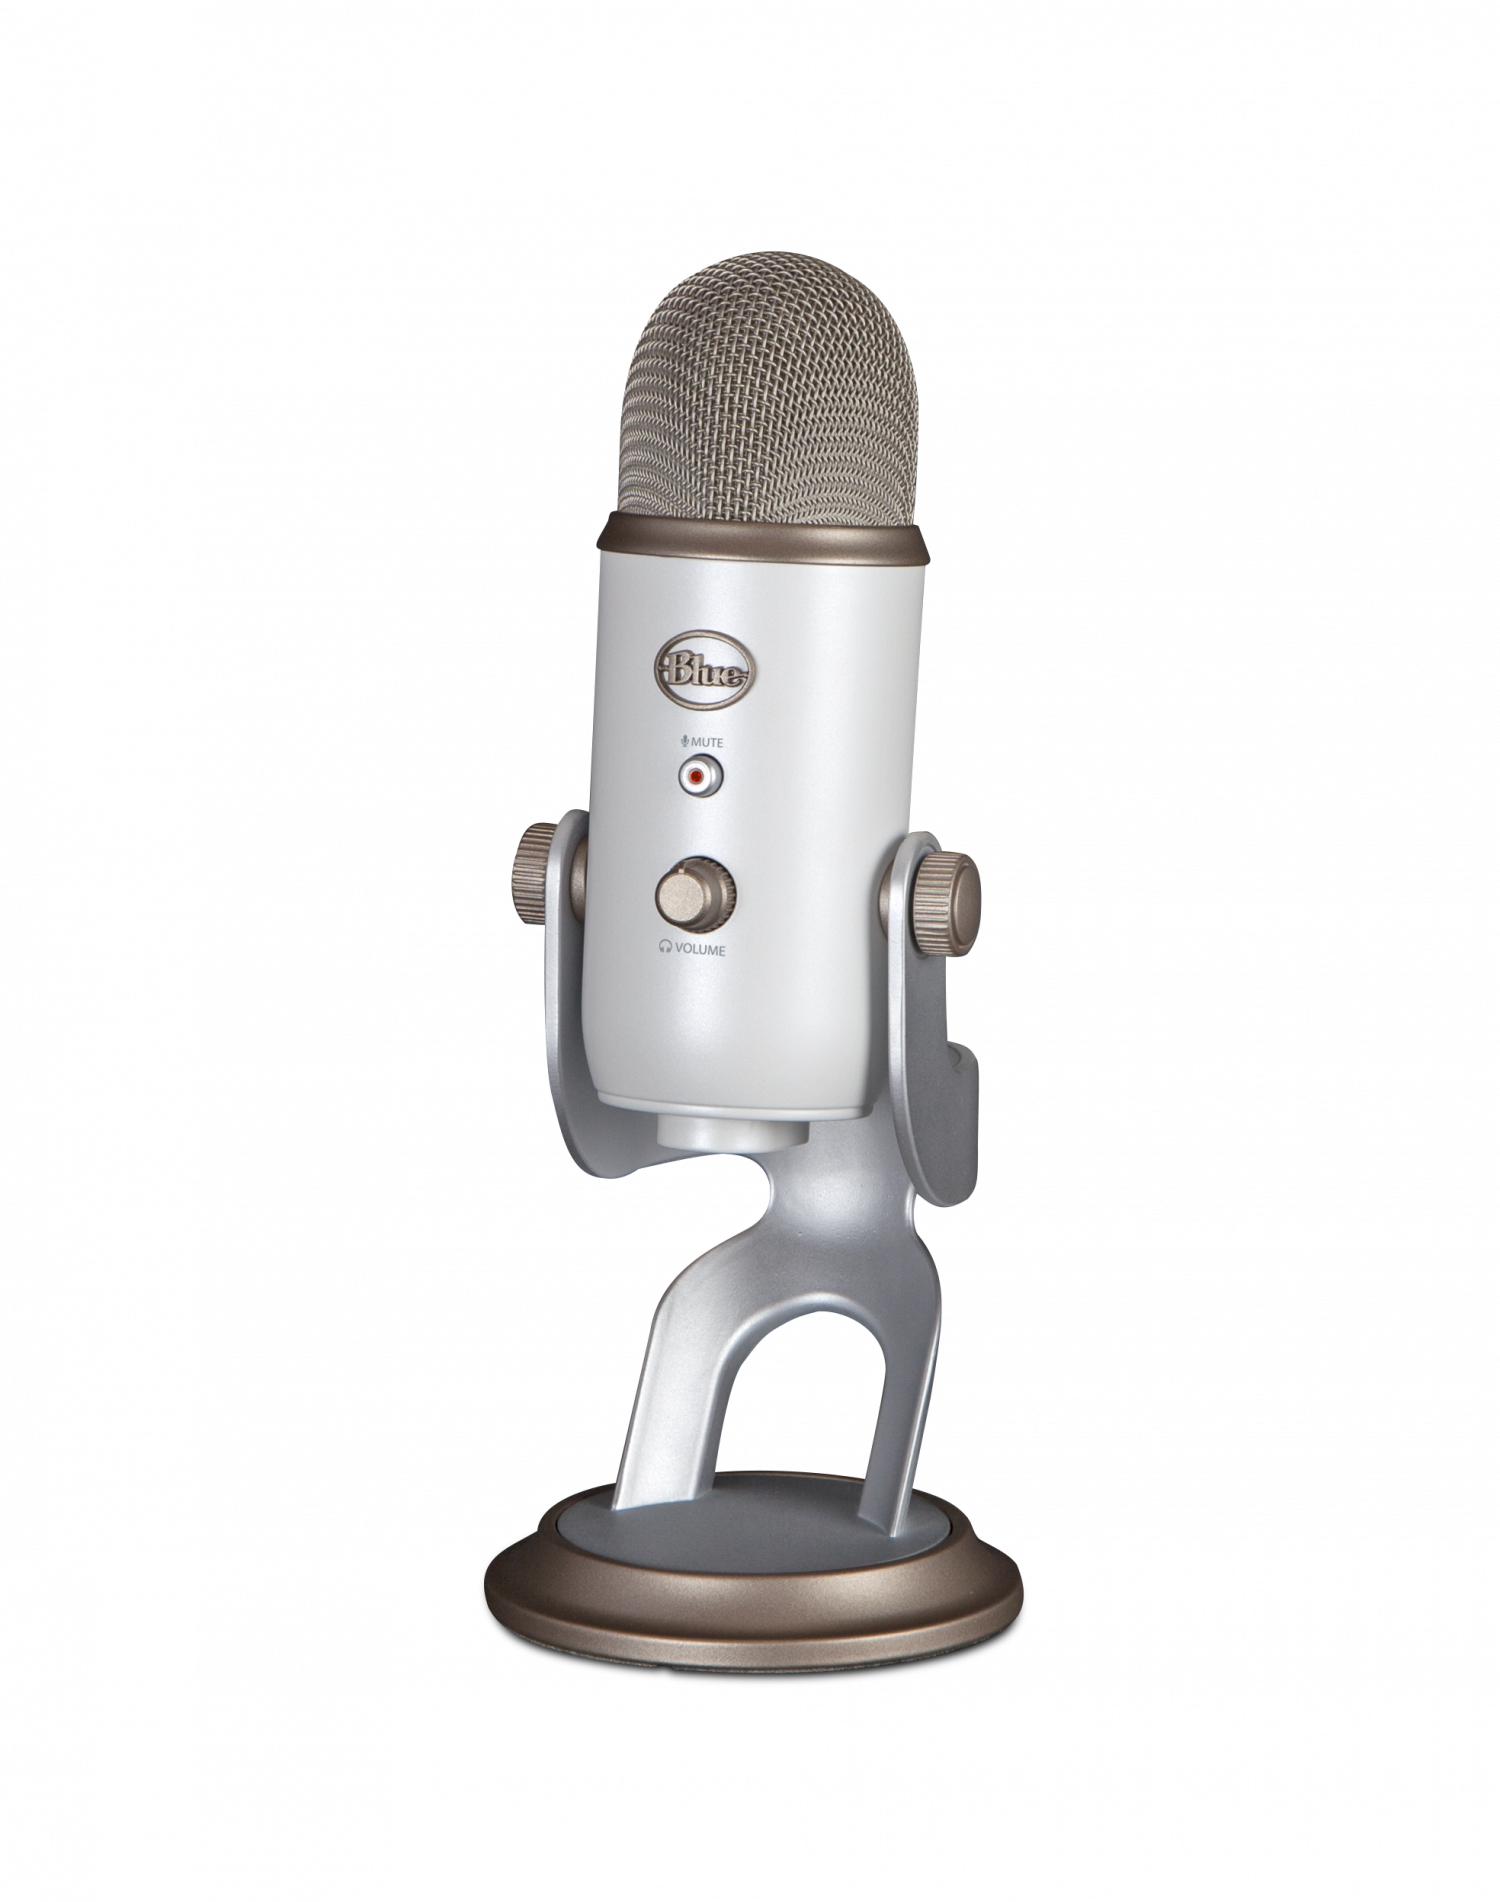 Blue yeti png. Vintage white nordic game